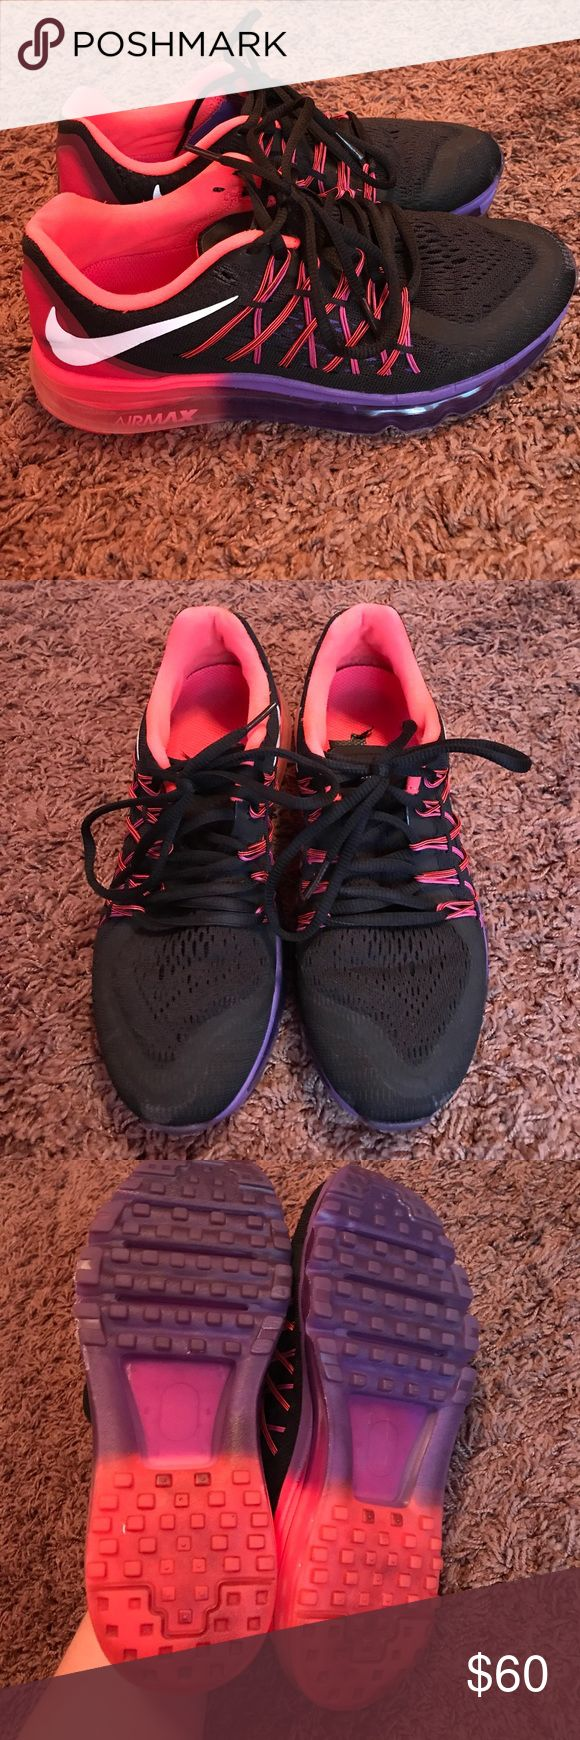 Nike Air Max Nike Air Max in neon pink and purple. Size 6.5 Nike Shoes Sneakers